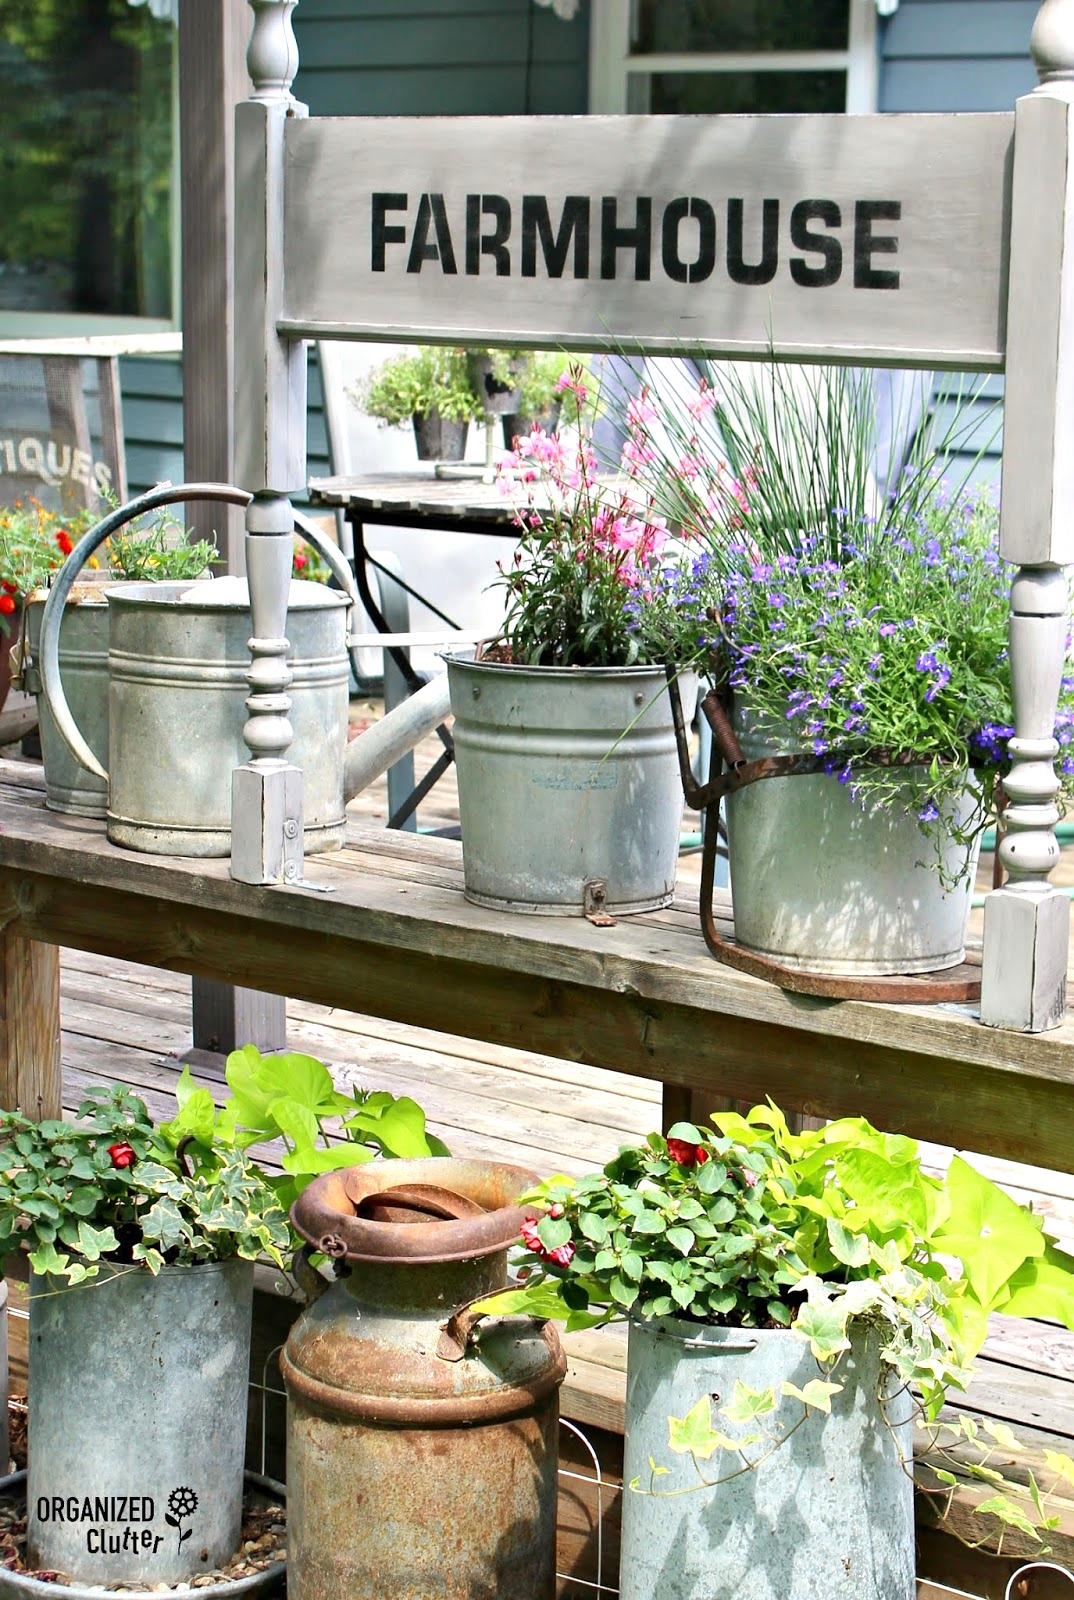 Footboard FARMHOUSE garden junk sign in a flowerbed by Organized Clutter, featured on Funky Junk Interiors